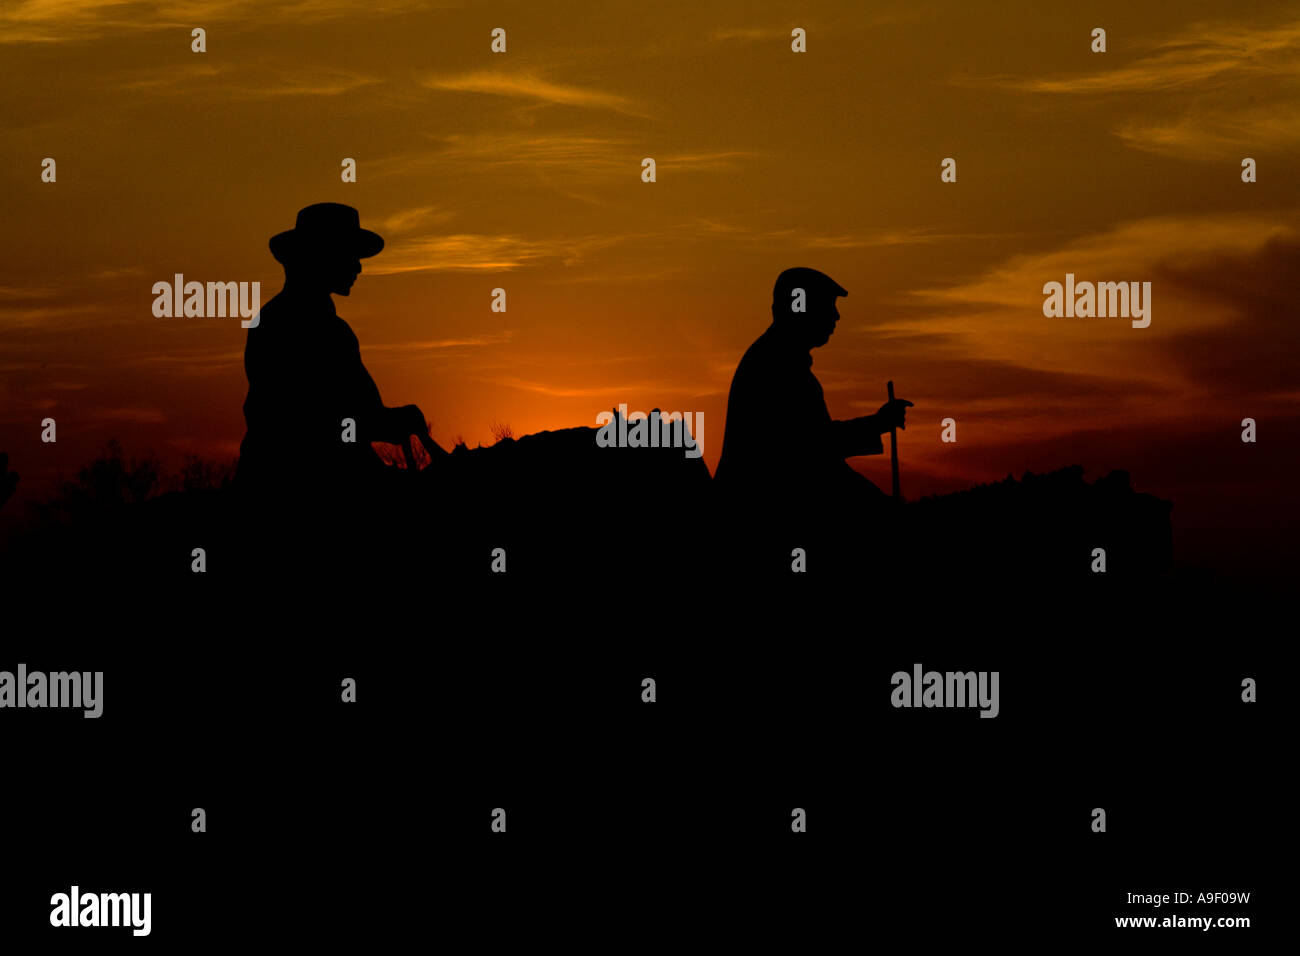 farmer europe stock photos farmer europe stock images alamy. Black Bedroom Furniture Sets. Home Design Ideas